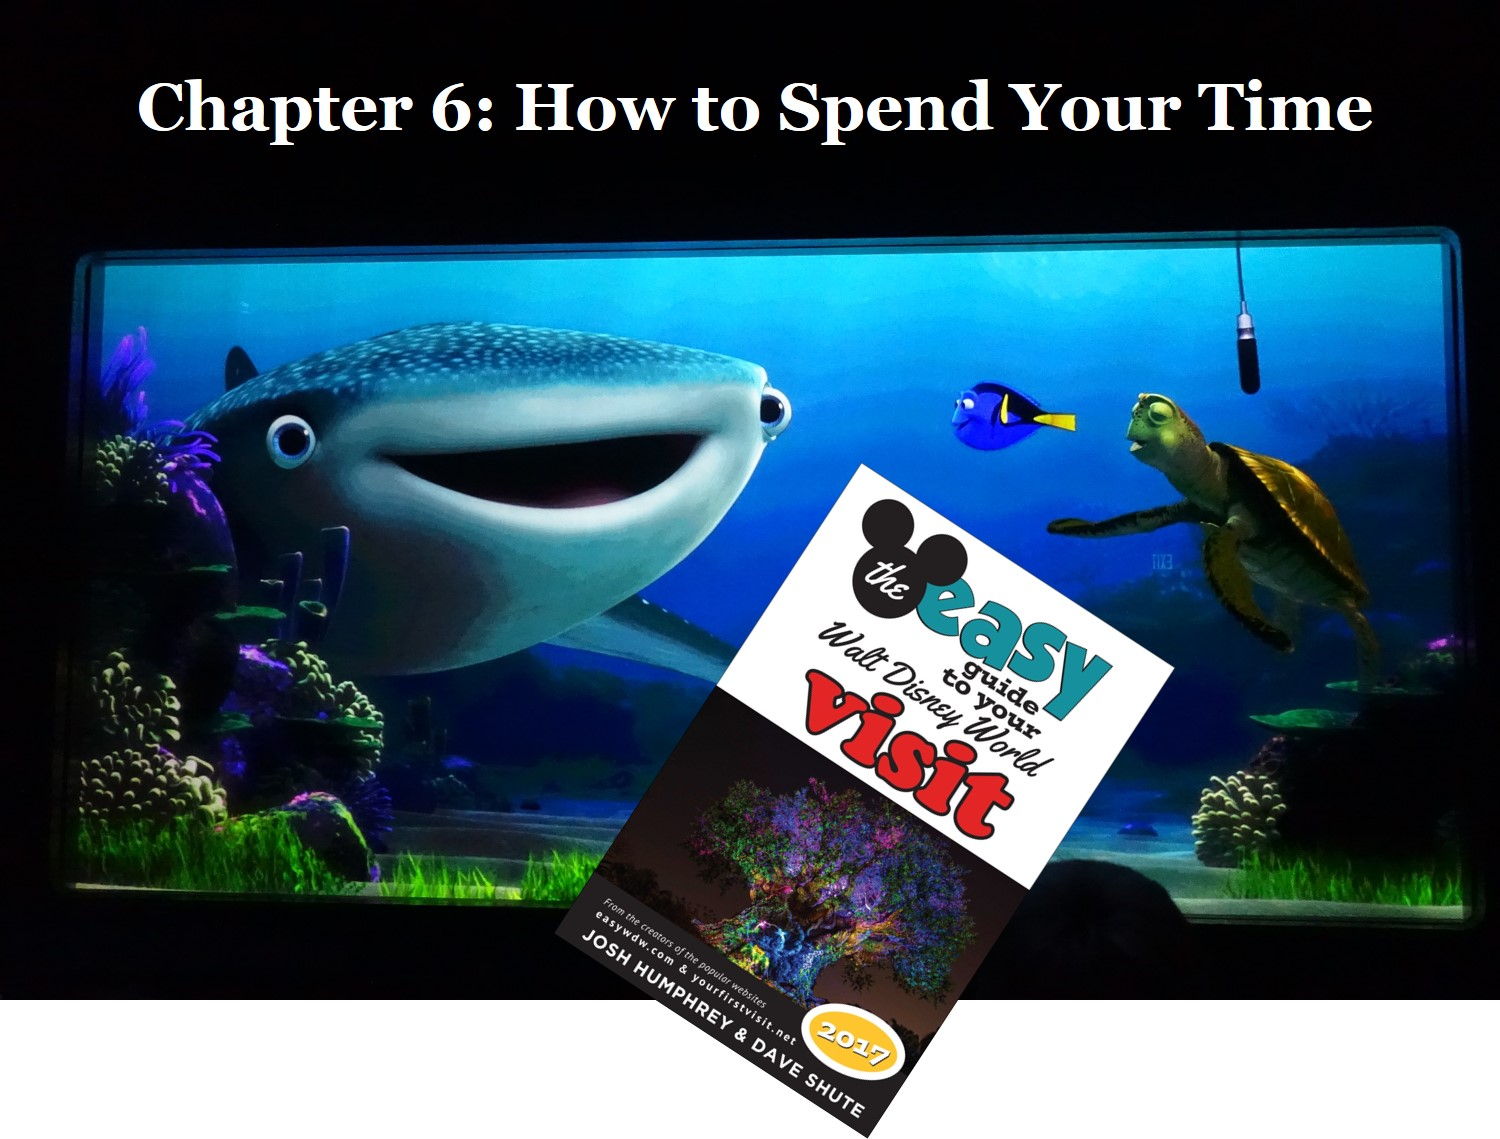 chapter-6-of-the-easy-guide-how-to-spend-your-time